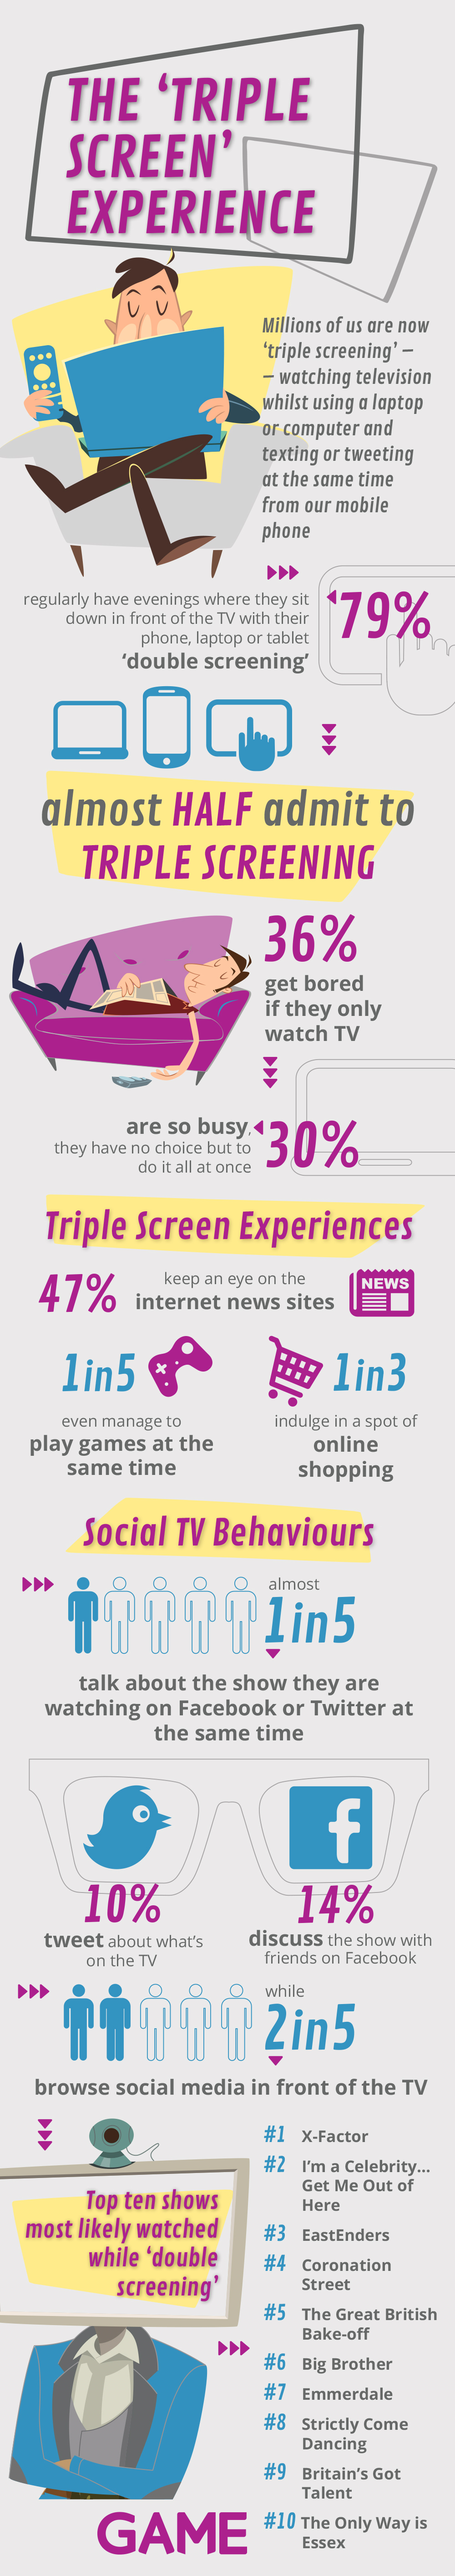 The 'Triple Screen' Experience infographic